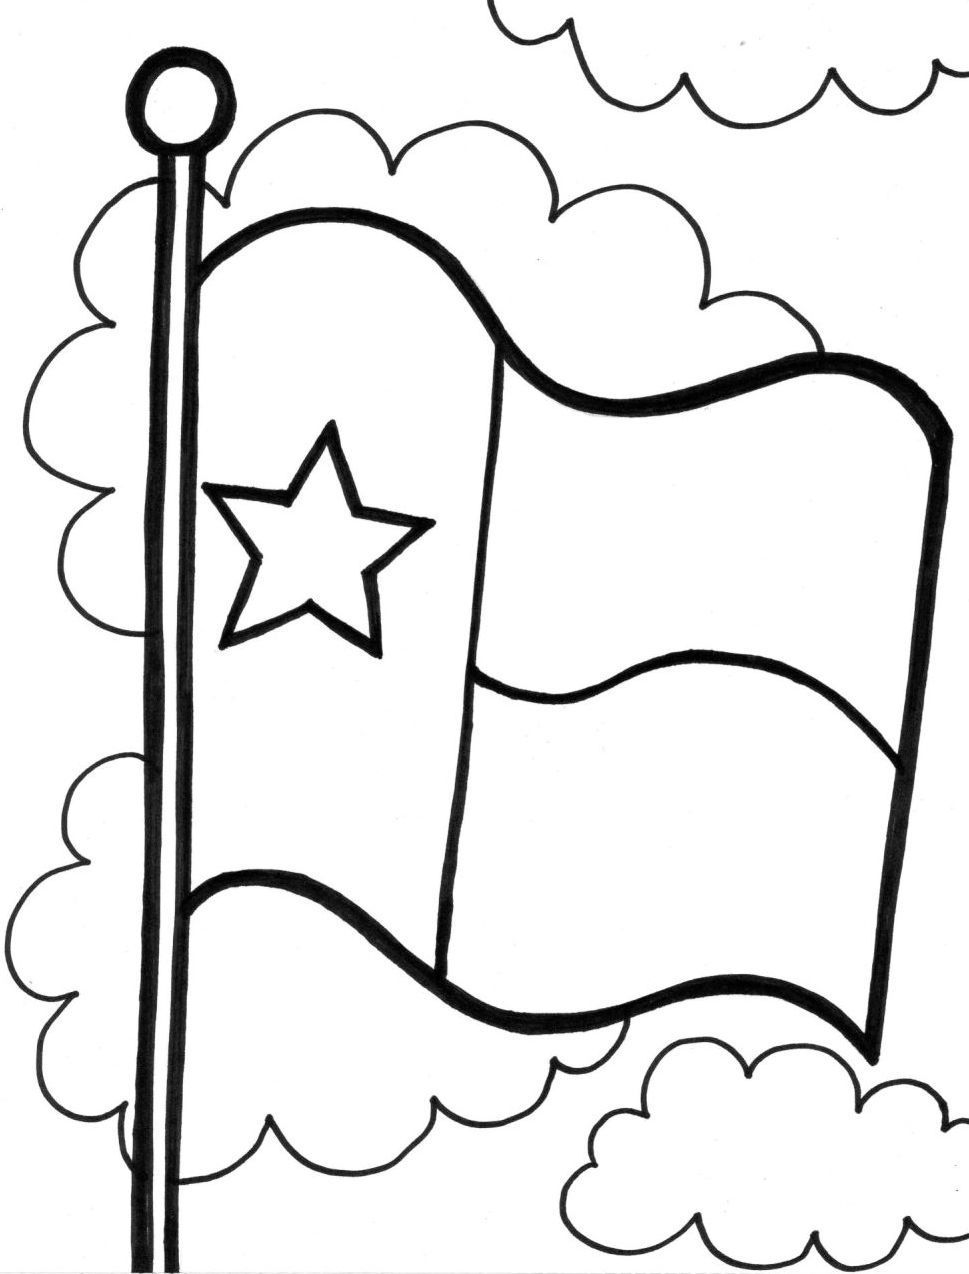 Flag coloring pages image by Linda Raymer on TEXAS my